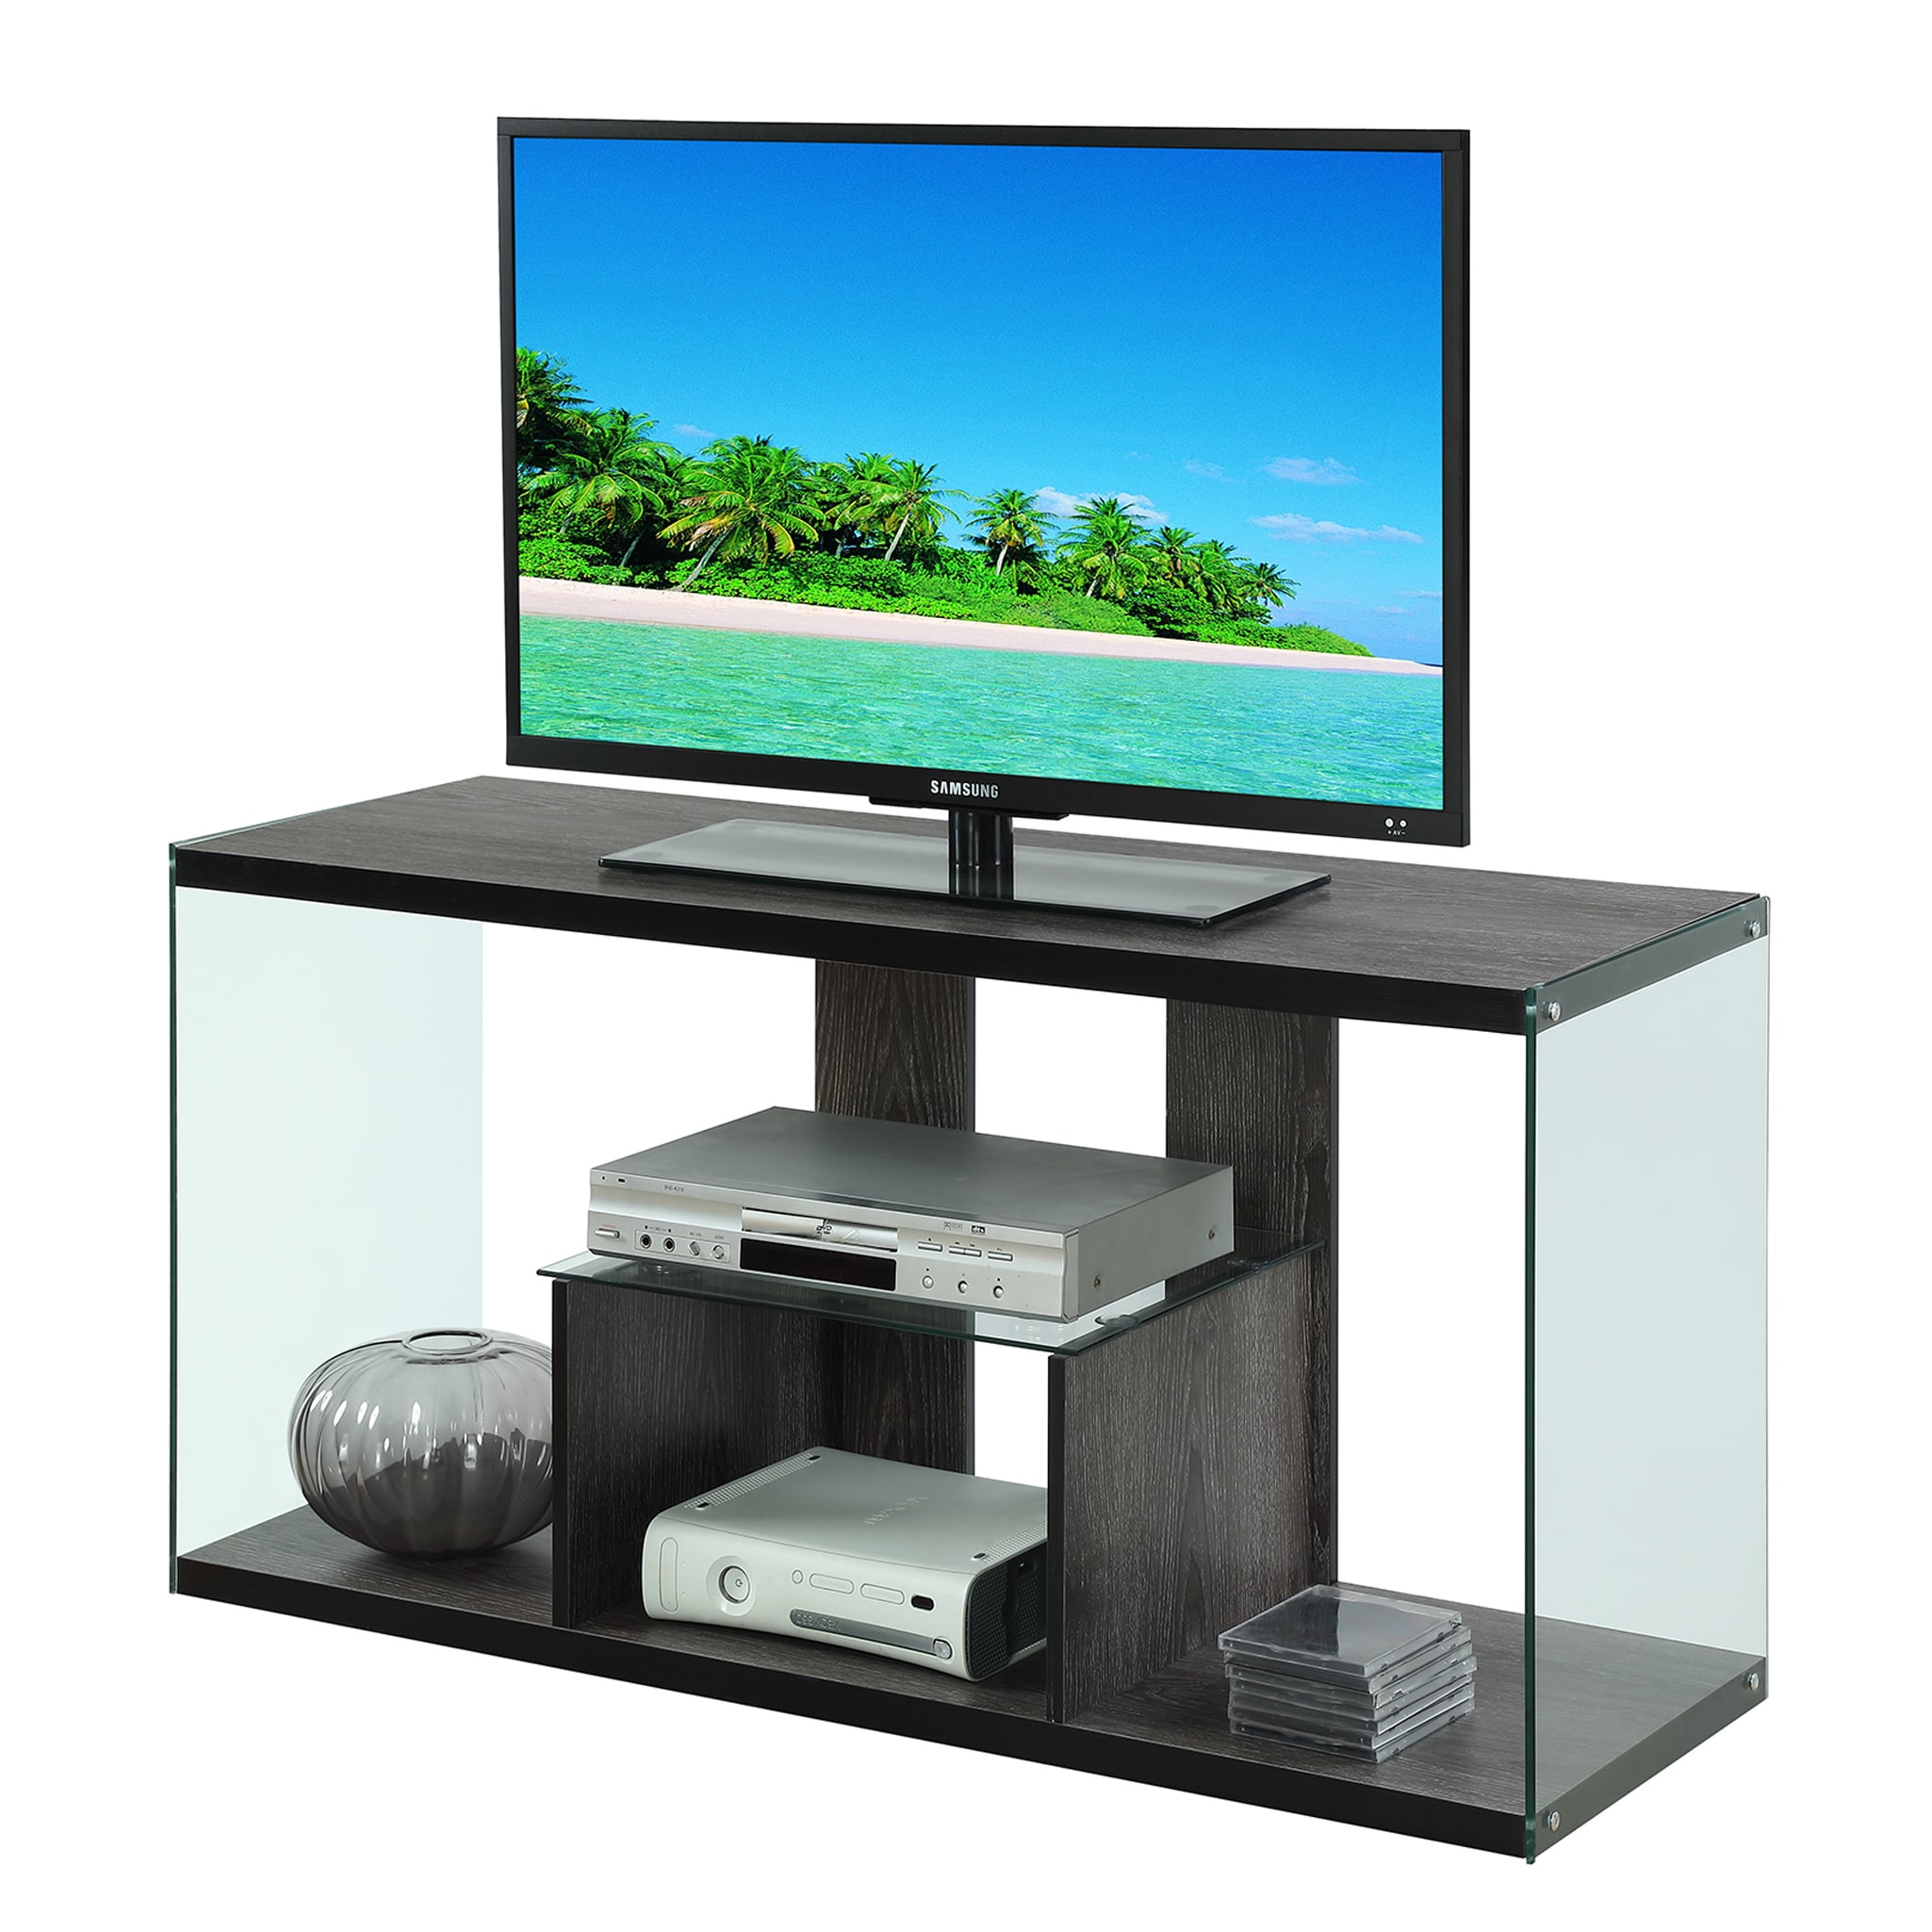 economic w rated best for flat accessories stand mounting pedestal customer universal helpful pcr screen lcd top tv table reviews in base vivo glass